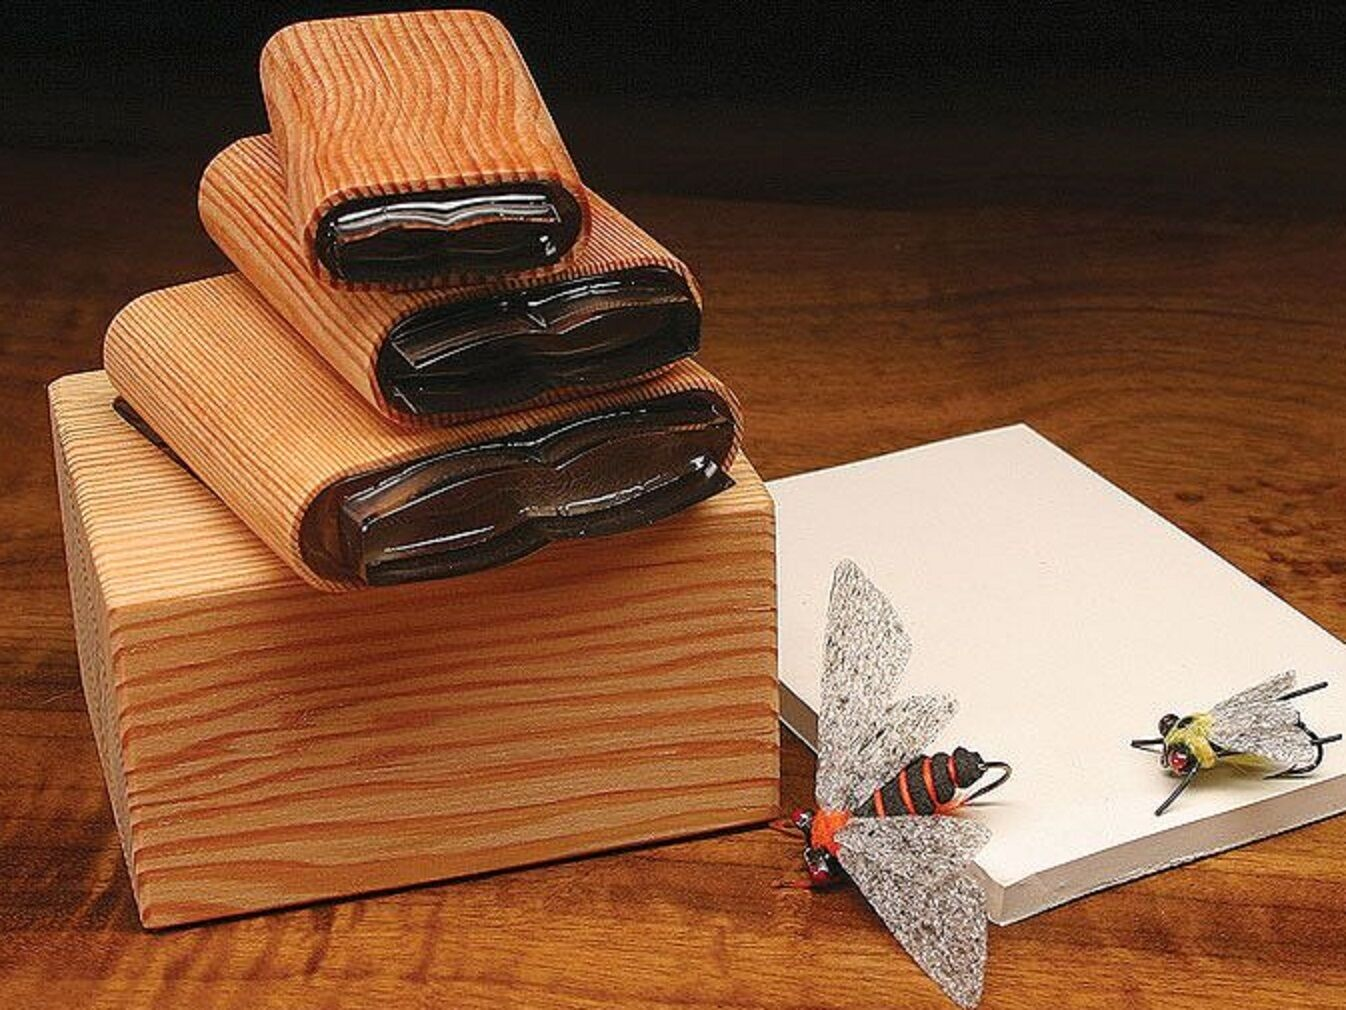 DELUXE UNIVERSAL BUG BODY 3 CUTTER SET  with Wood Caddy Box  Fly Tying